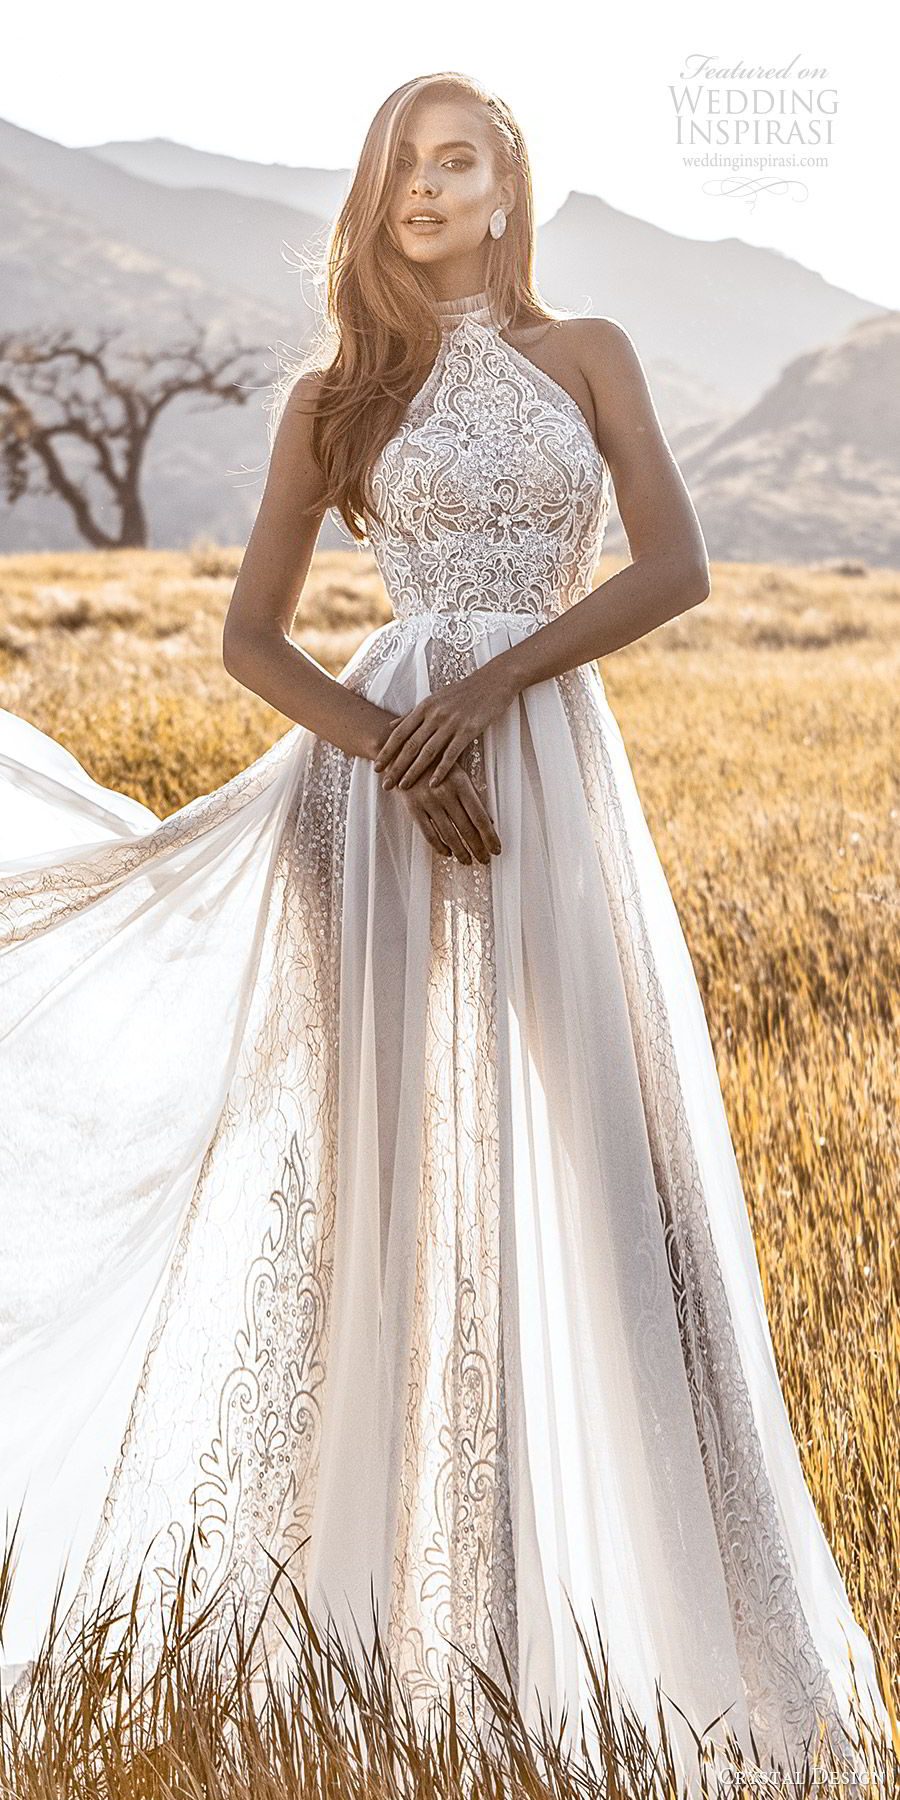 crystal design 2020 couture bridal sleeveless halter neckline fully embellished sheath wedding dress a line ball gown overskirt (1) romantic glitzy chapel train fv